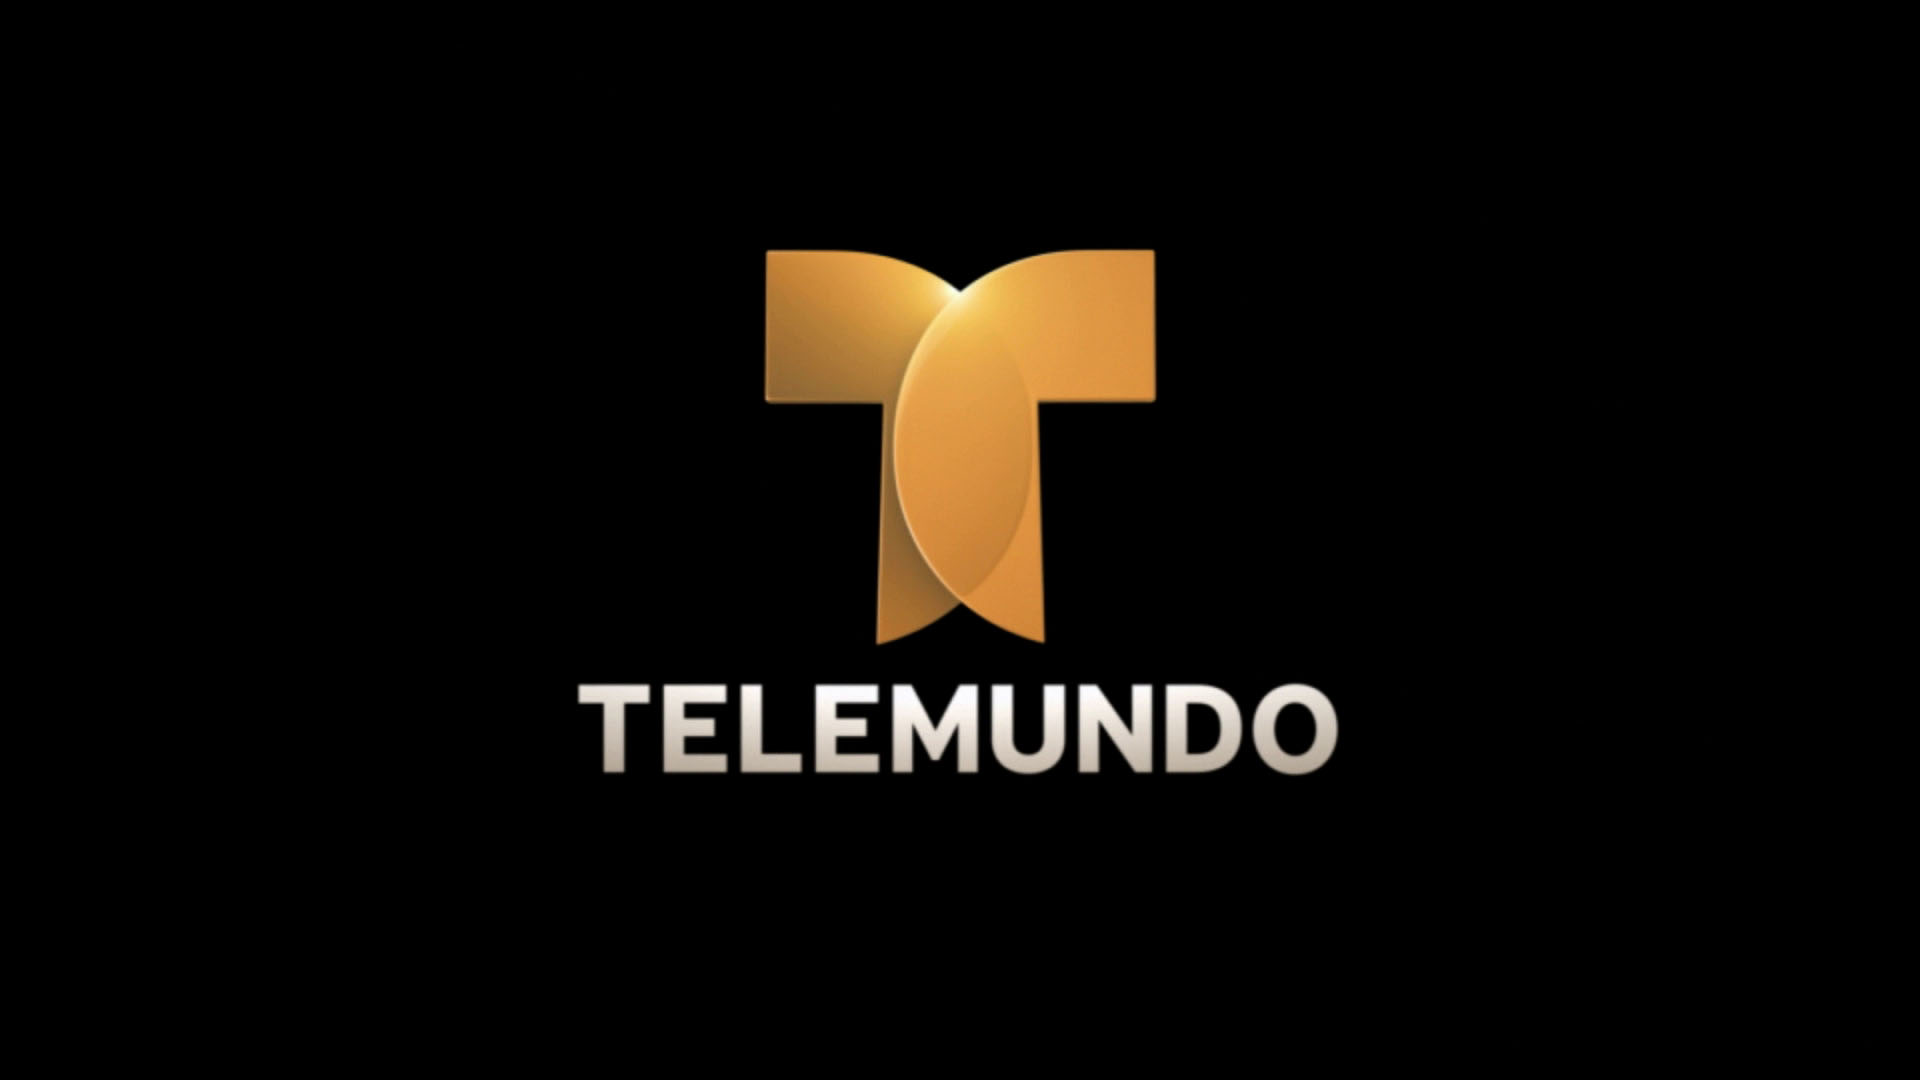 OFFICIALLY AUTHORIZED LUIS MIGUEL LIFE STORY SERIES TO PREMIERE ON TELEMUNDO - TRAILER